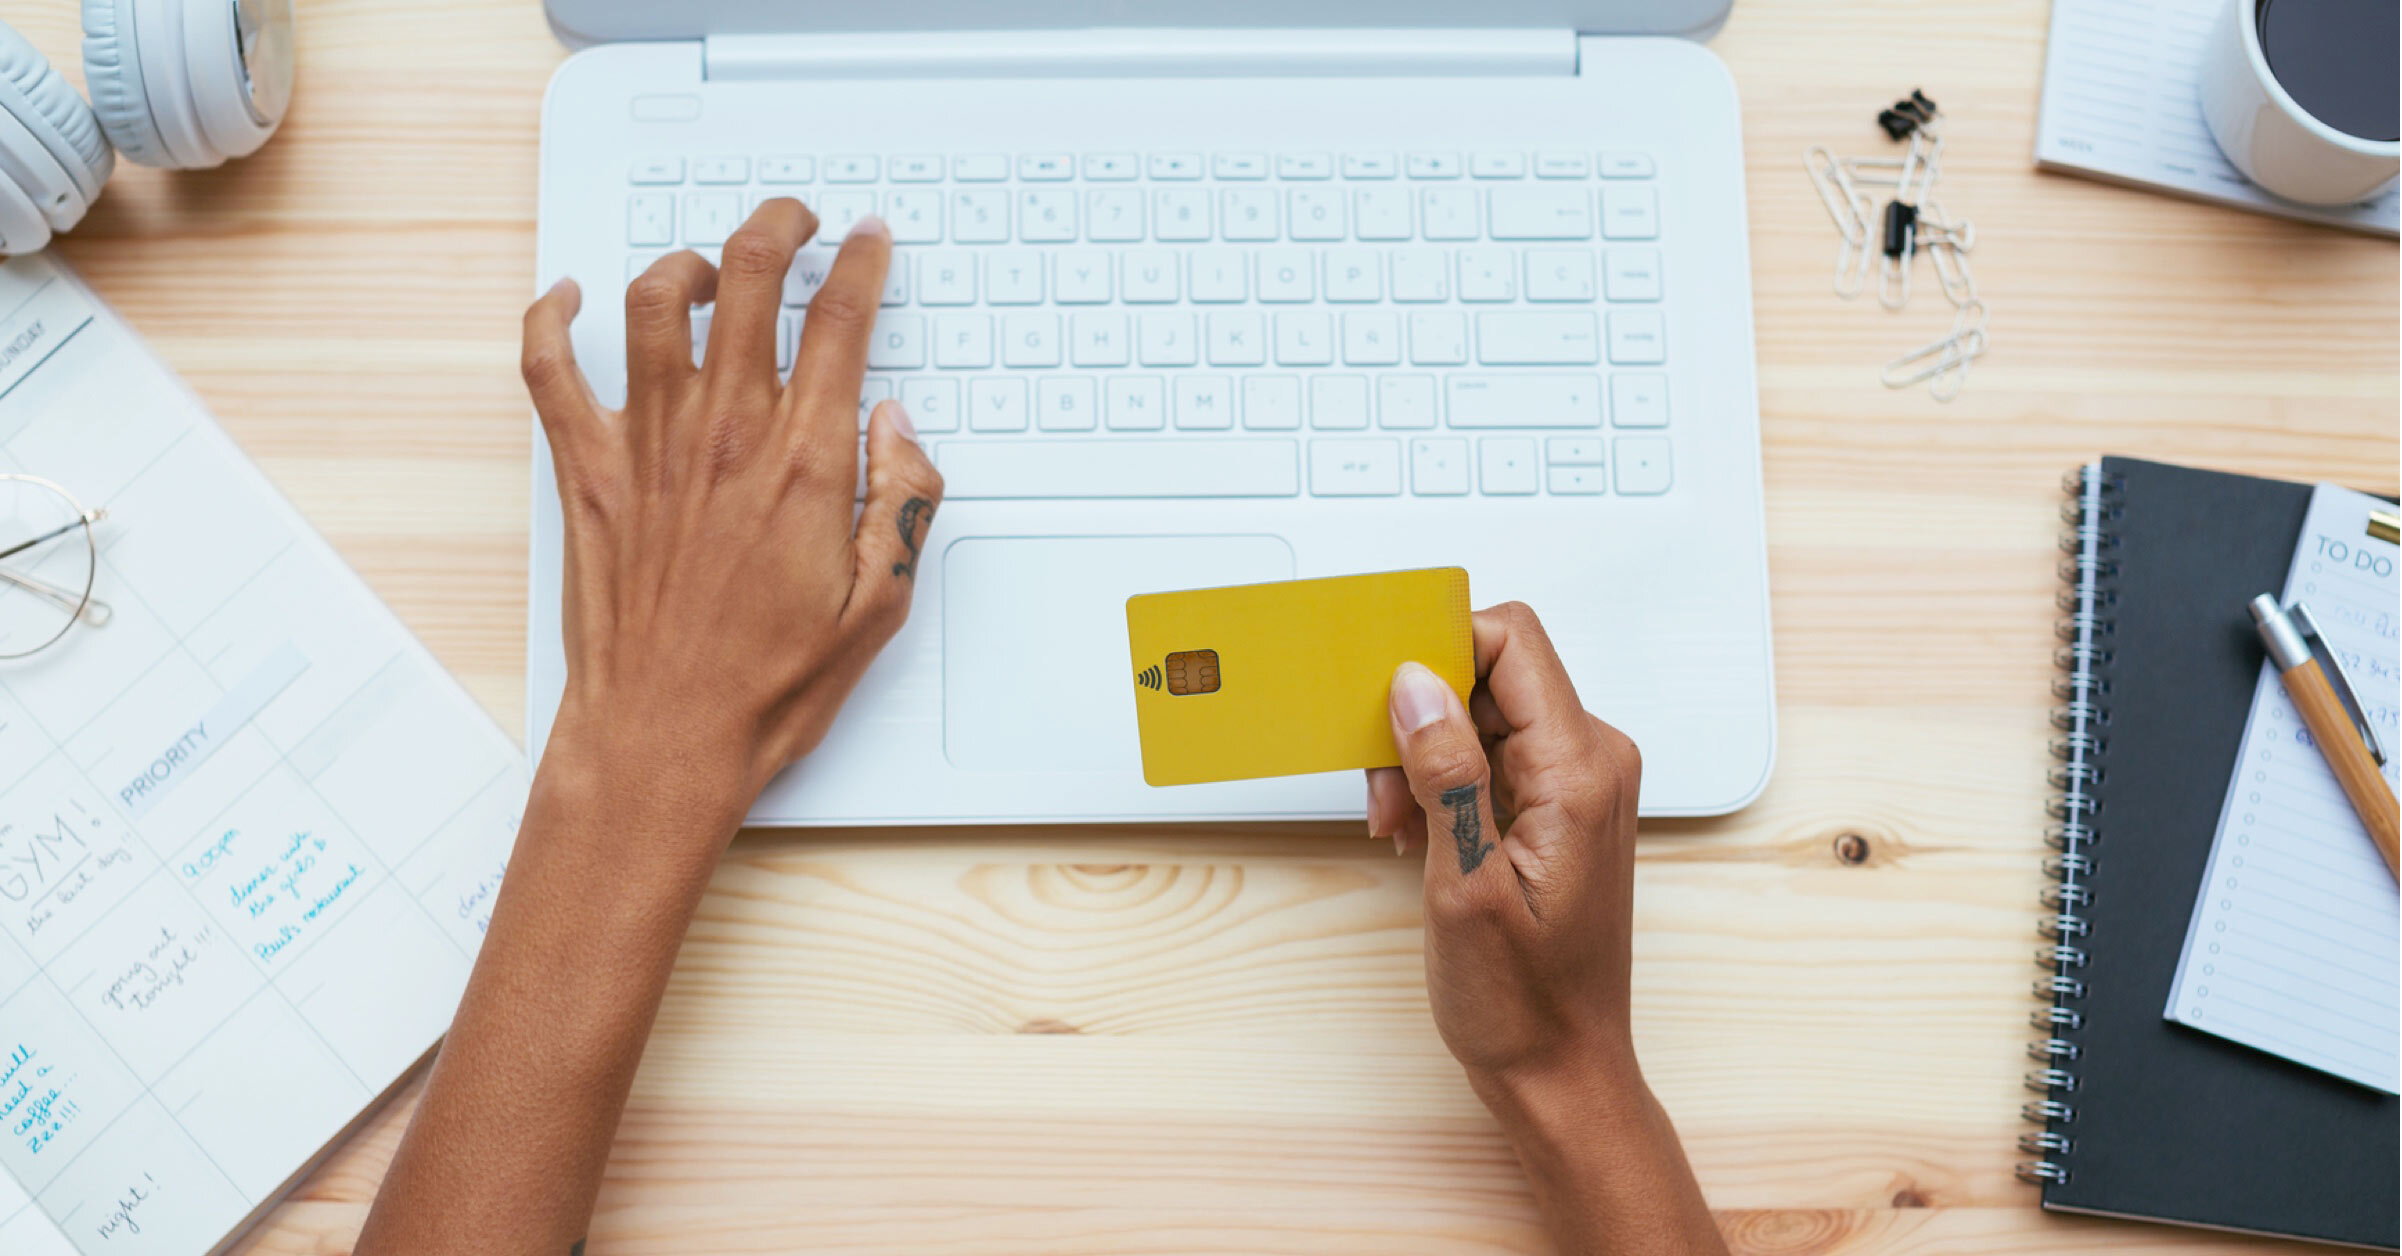 Customer at a laptop holding card to complete an online purchase